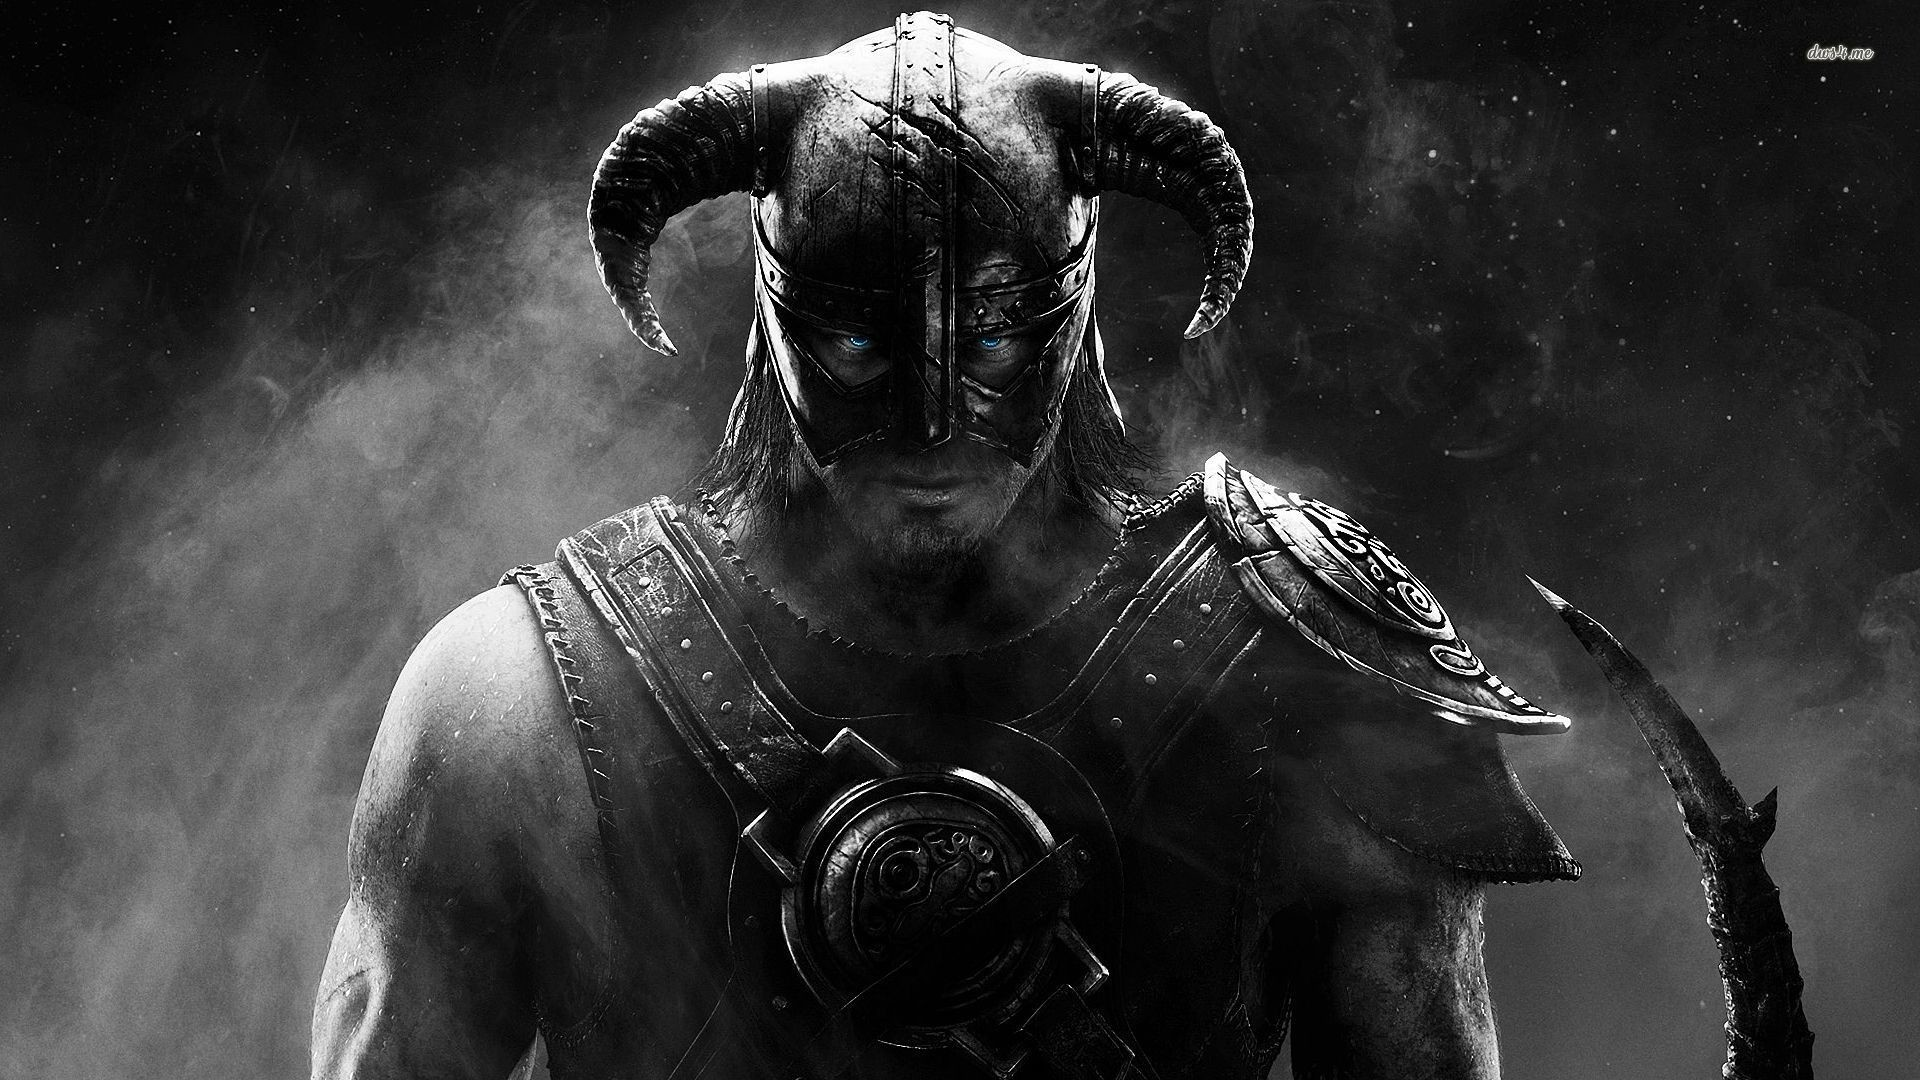 1920x1080 ... The Elder Scrolls V - Skyrim wallpaper  ...